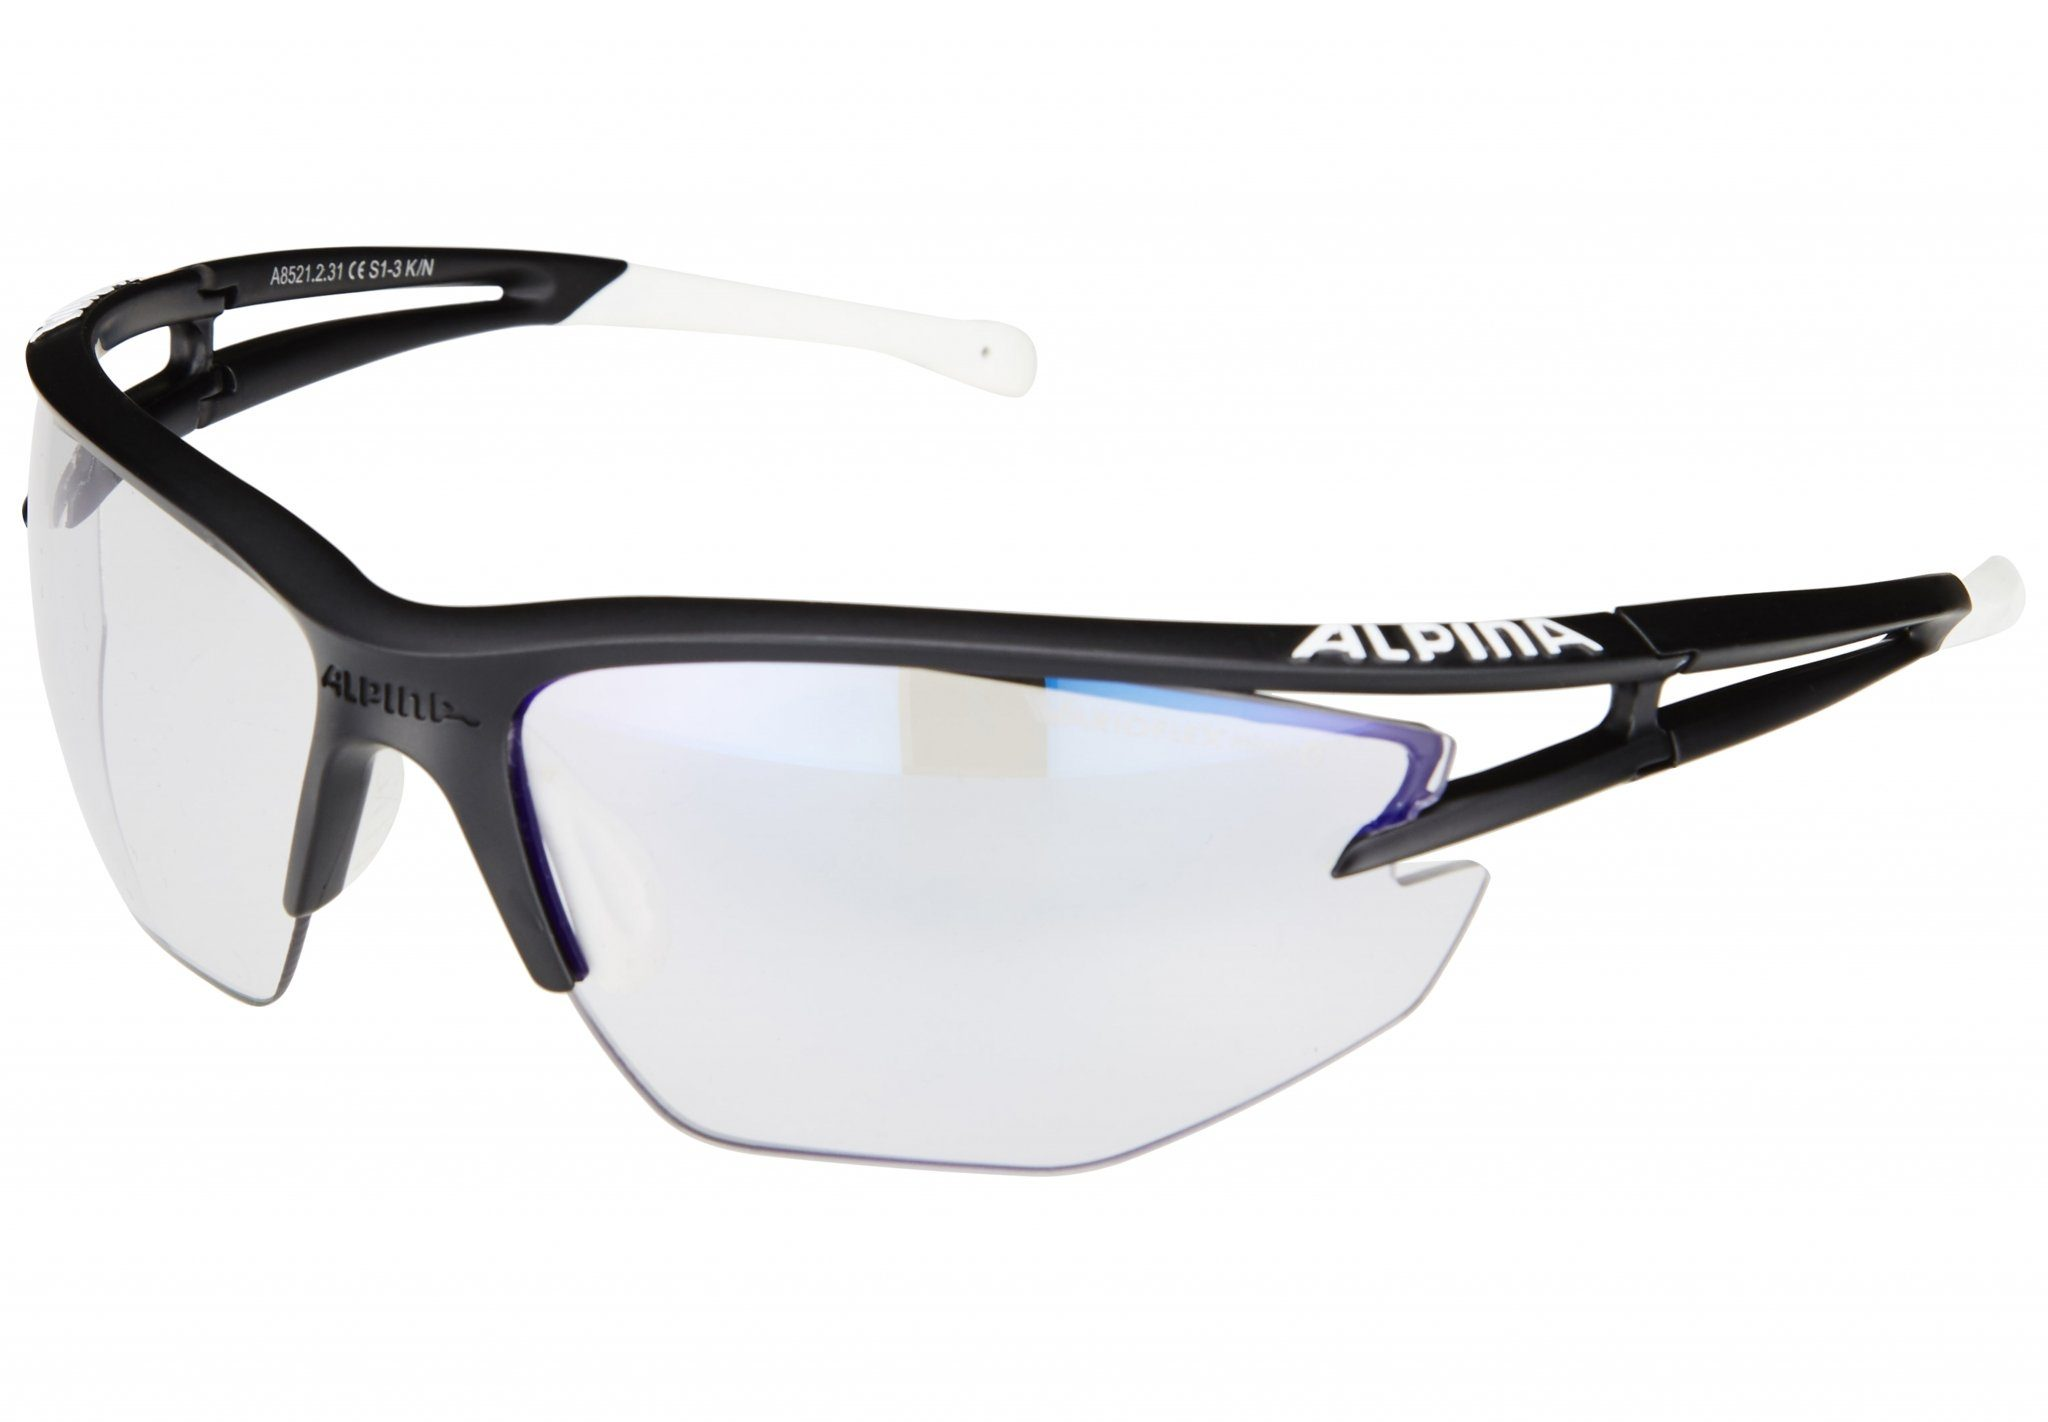 Alpina Radsportbrille »Eye-5 HR VLM+«